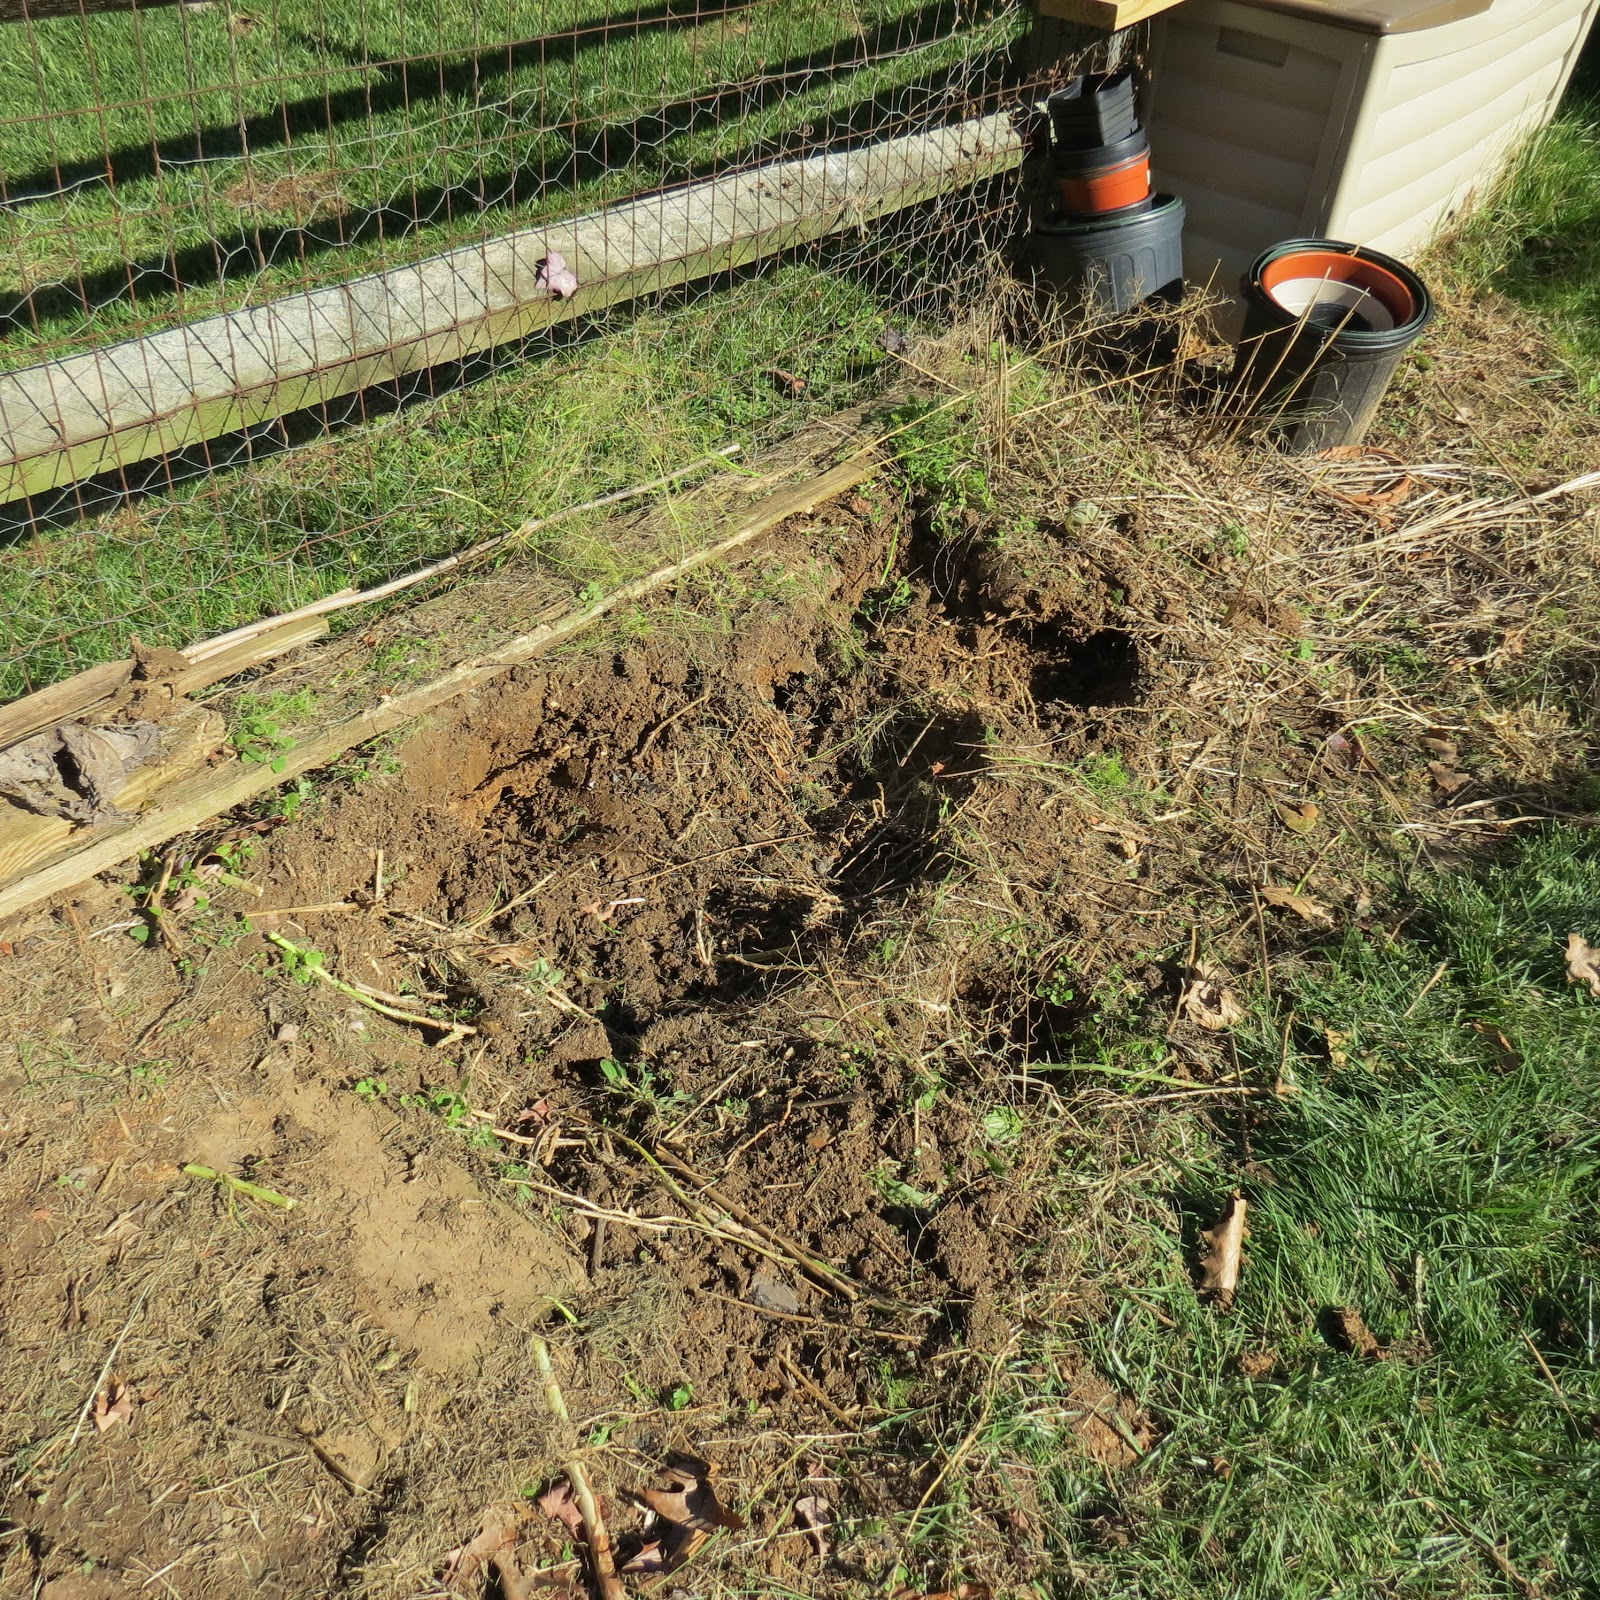 Best Place To Plant Asparagus: The Rusted Vegetable Garden